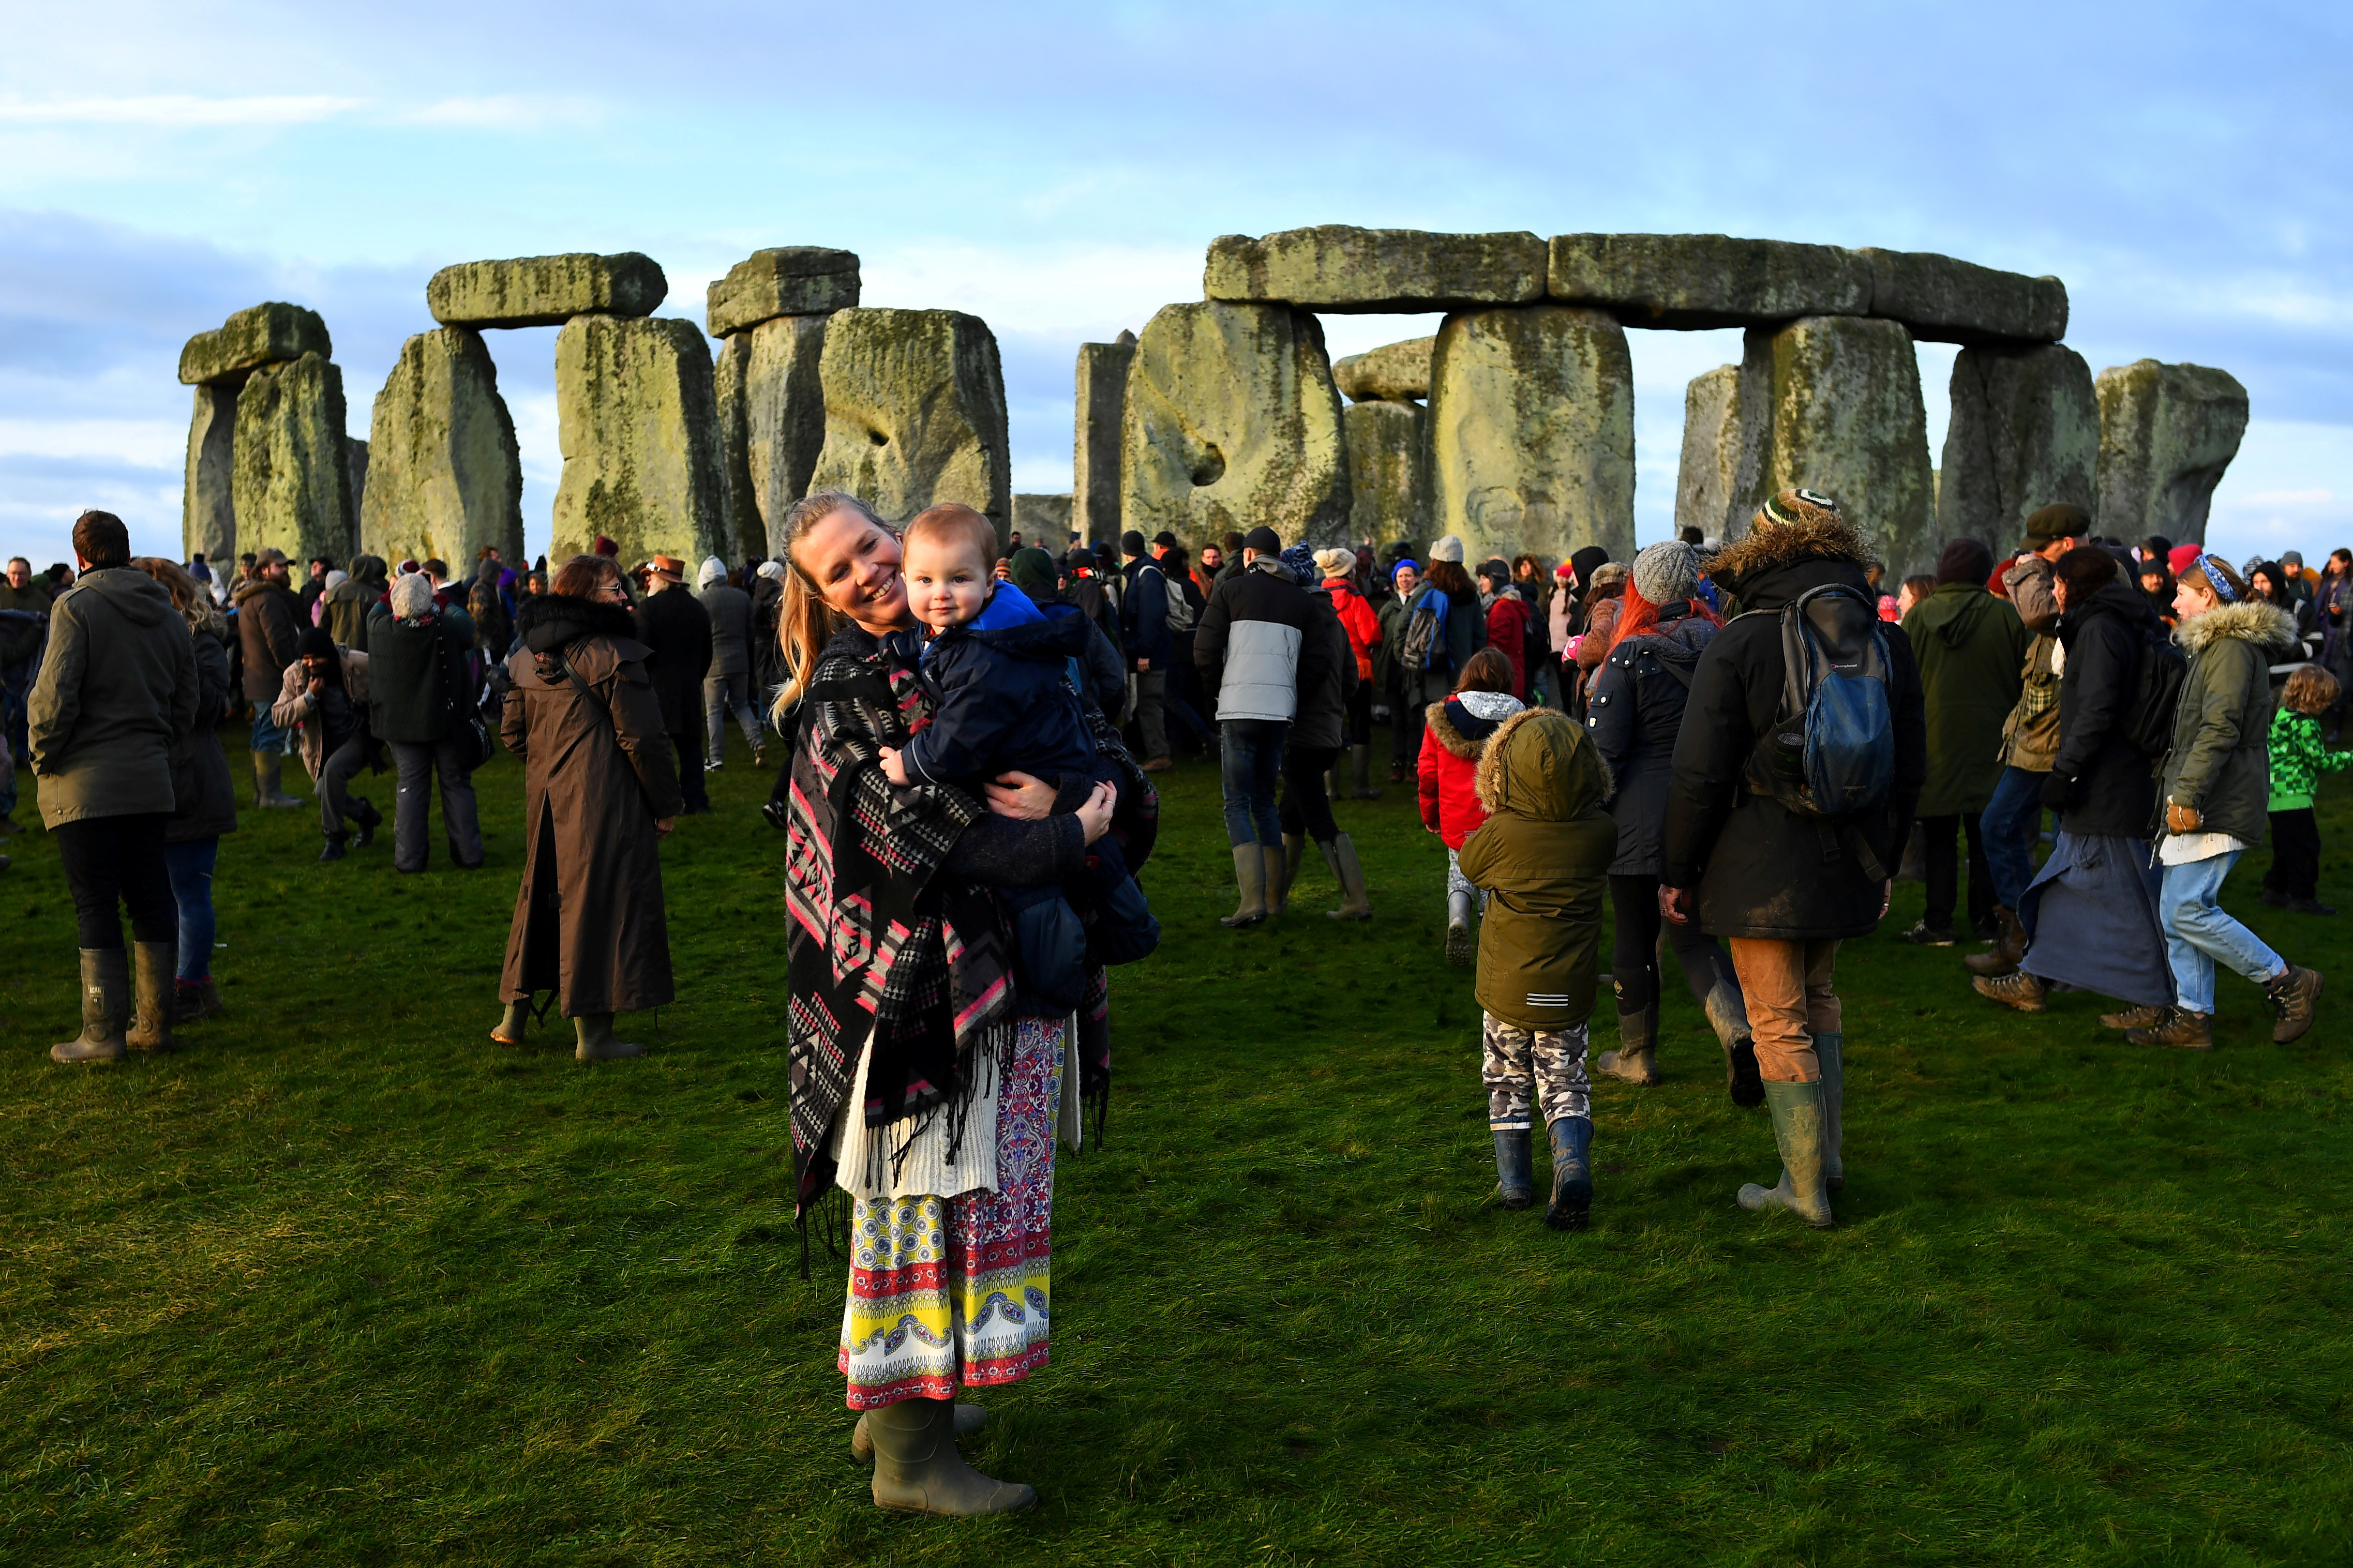 Ann Owen poses with her 11-month-old son Forrest, as they welcome the winter solstice at Stonehenge stone circle in Amesbury, Britain, December 22, 2019.  REUTERS/Dylan Martinez/File Photo